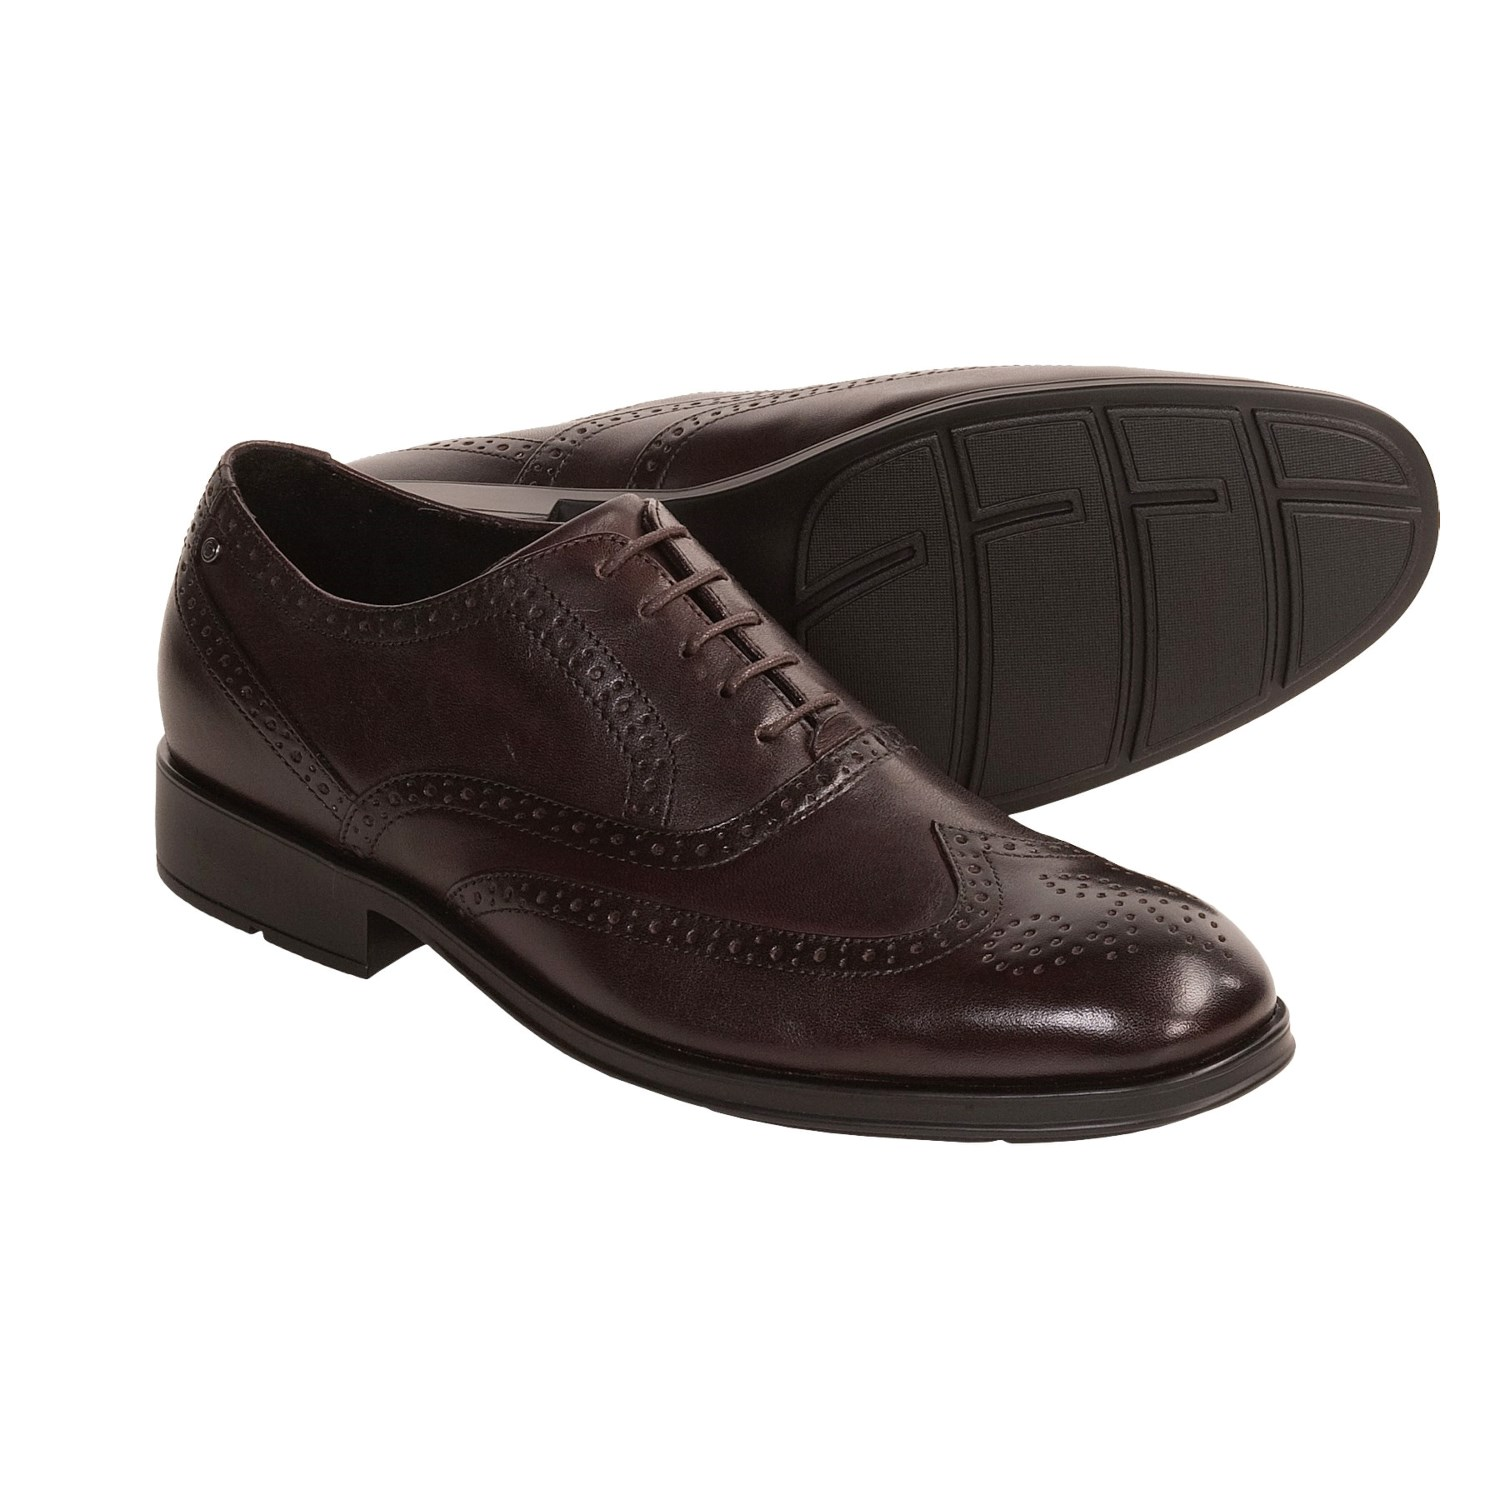 Shop men's oxfords and monks at avupude.ml and see our entire collection of classic dress shoes and sport oxfords for men. Cole Haan. FREE GROUND SHIPPING | $10 Flat Rate 2-DAY. Free Returns & Exchanges. FREE SHIPPING, RETURNS AND EXCHANGES Men's ZERØGRAND Wingtip Oxford with Stitchlite™ $ Best Seller. Men's ZERØGRAND Wingtip.